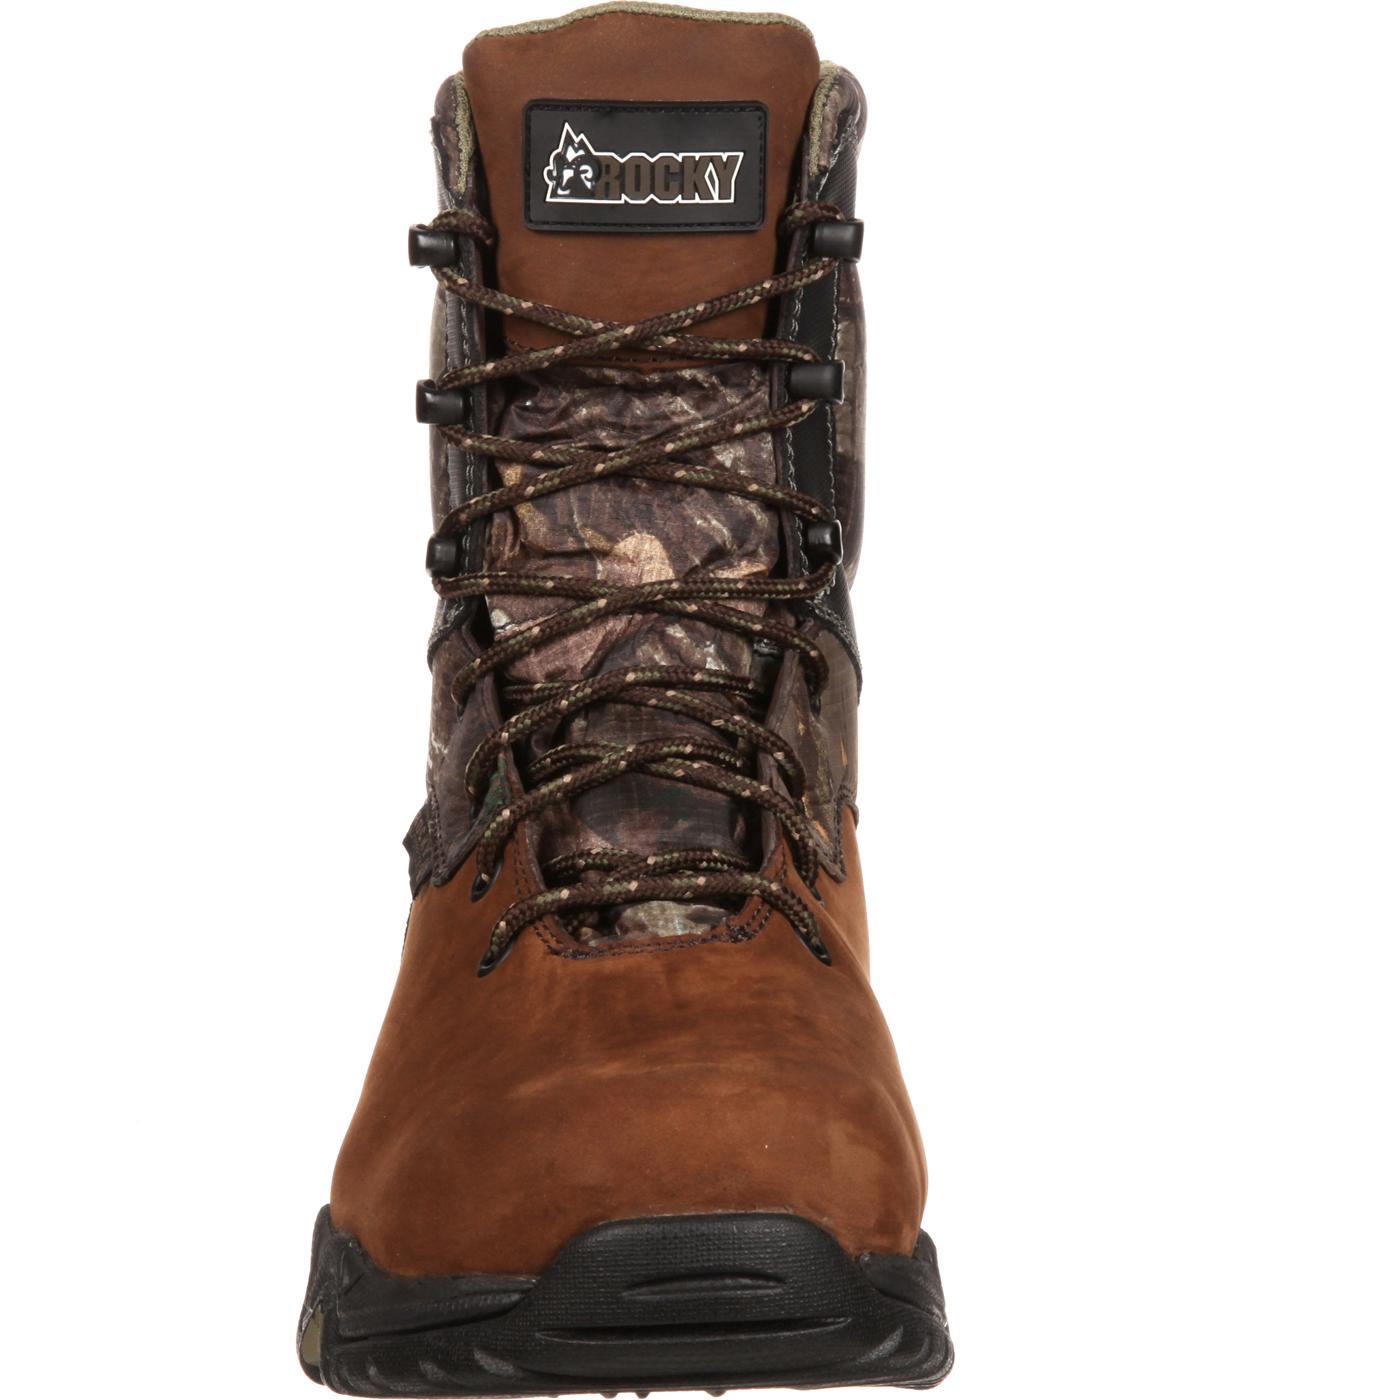 Rocky BigFoot Waterproof Insulated Outdoor Boot, #RKYS103